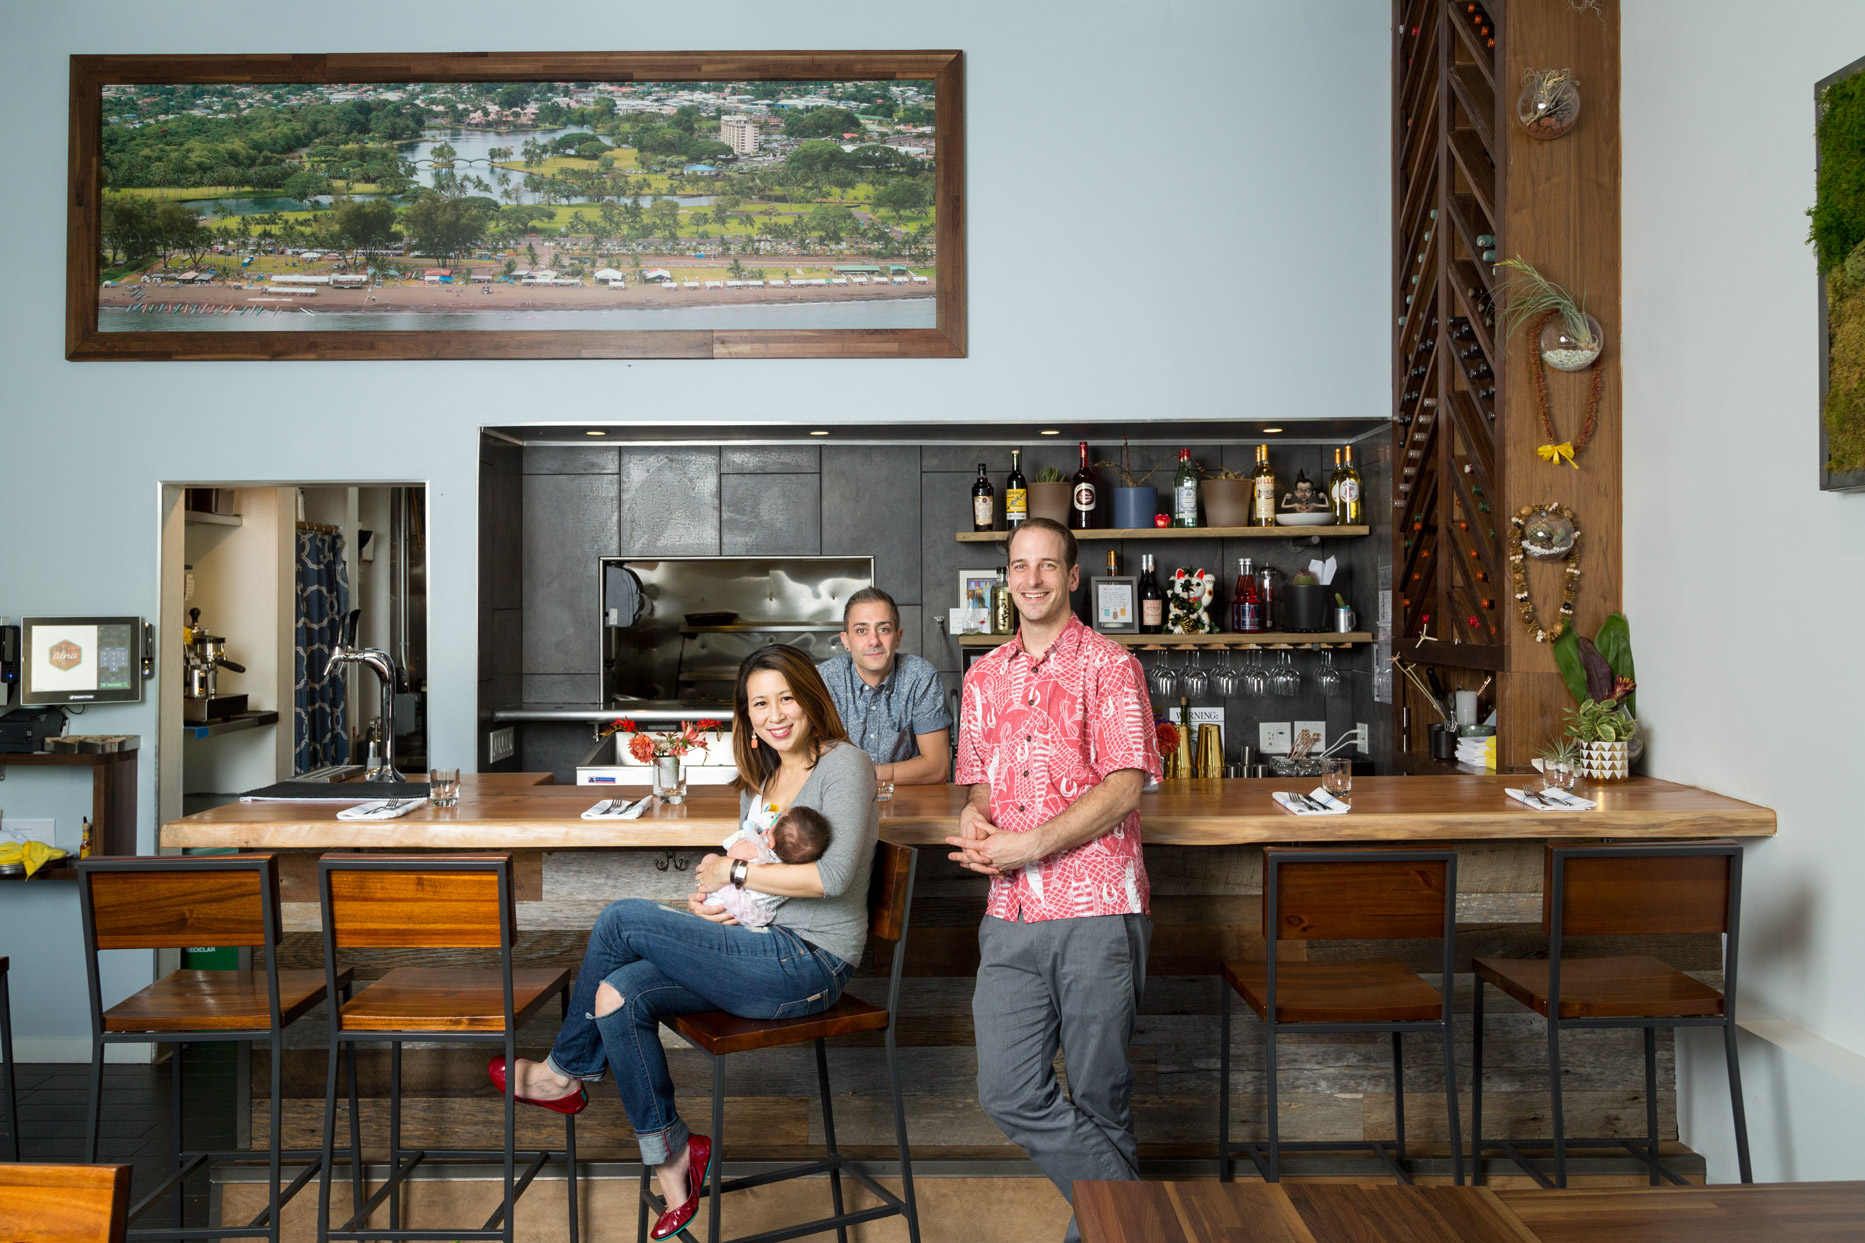 The 'āina team brings Hawaiian brunch fare to Dogpatch